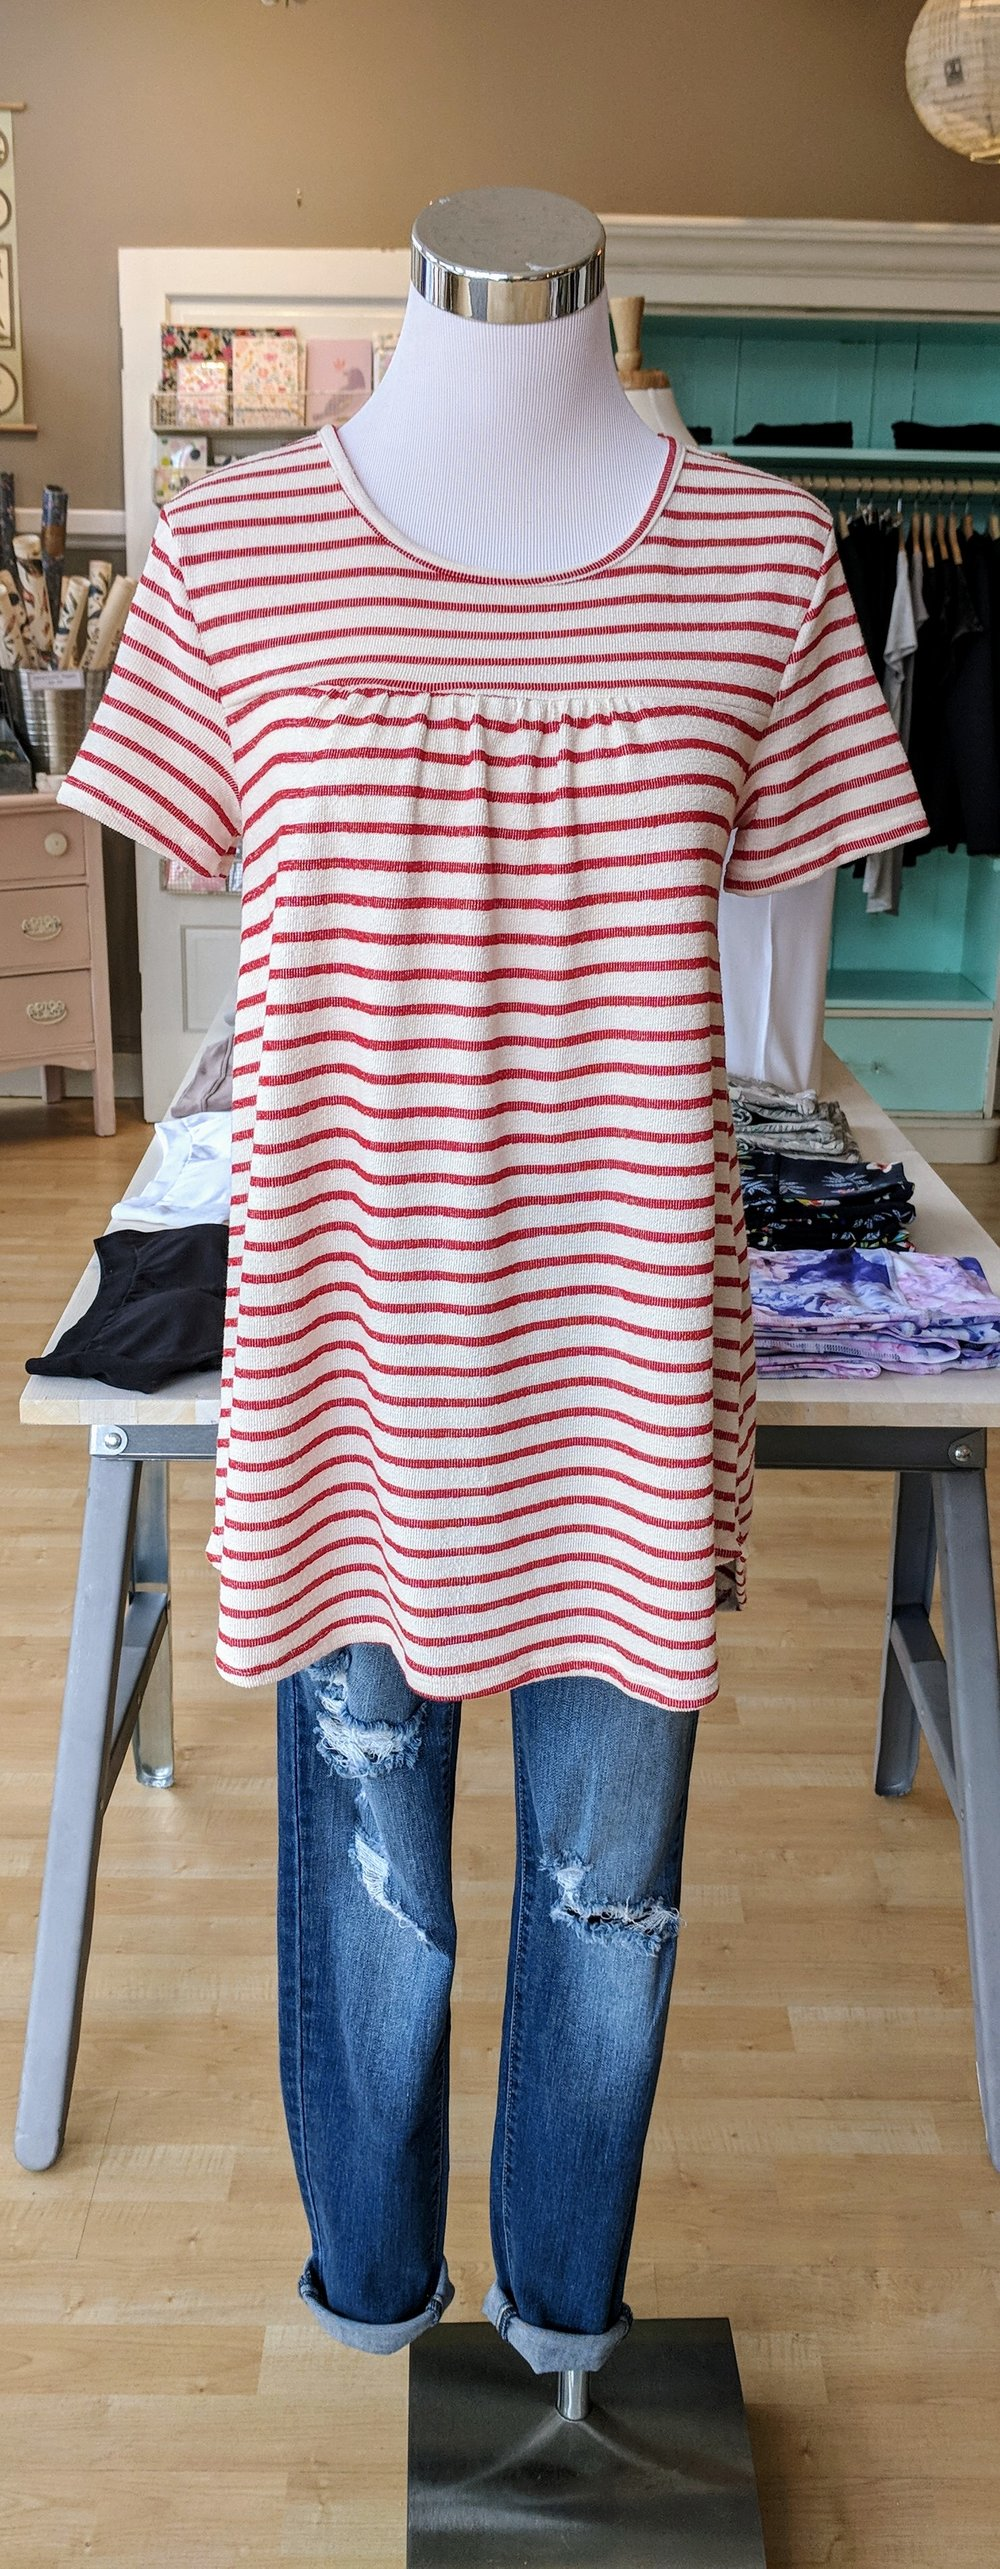 Red and white stripe top $32